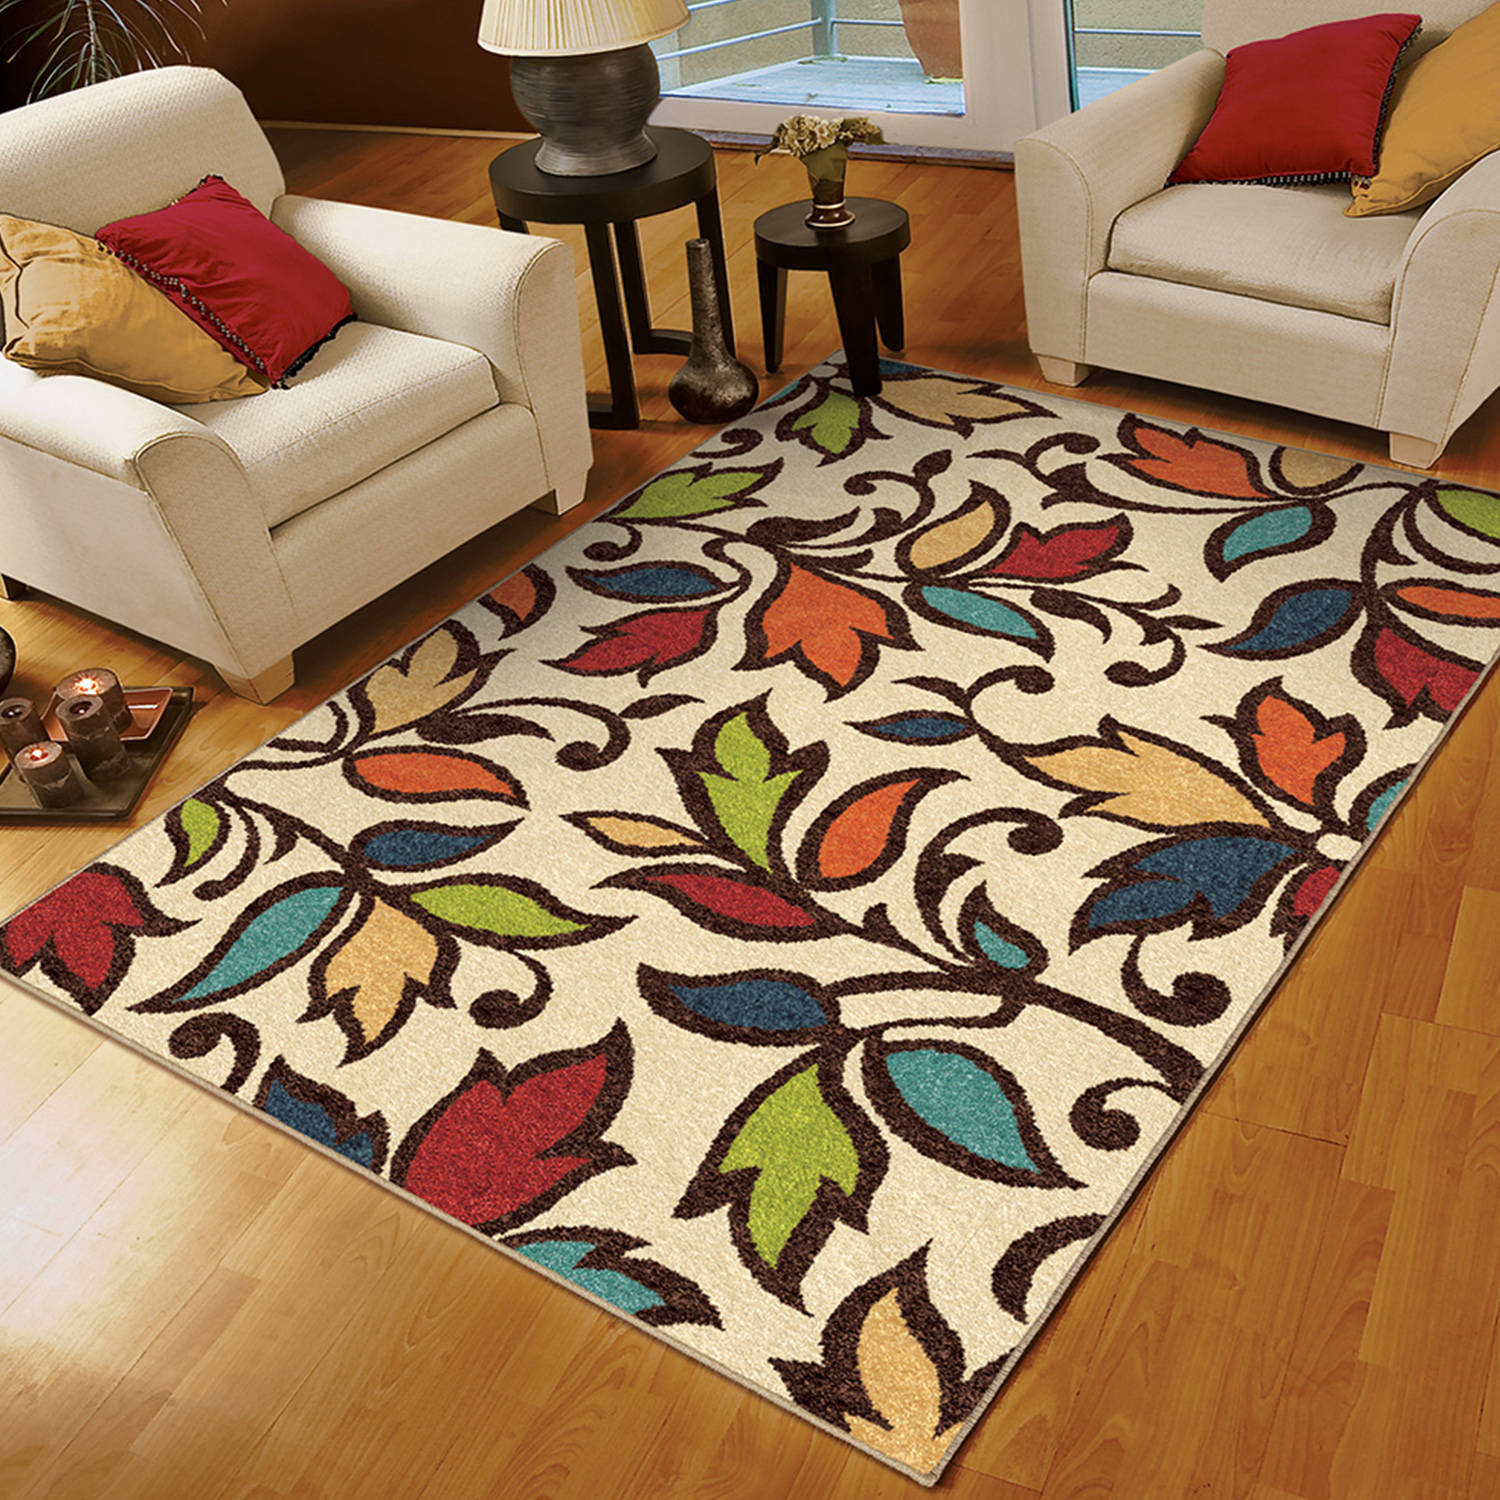 Orian Rugs Indoor Outdoor Dicarna Cream Leaves Area Rug by Orian Rugs